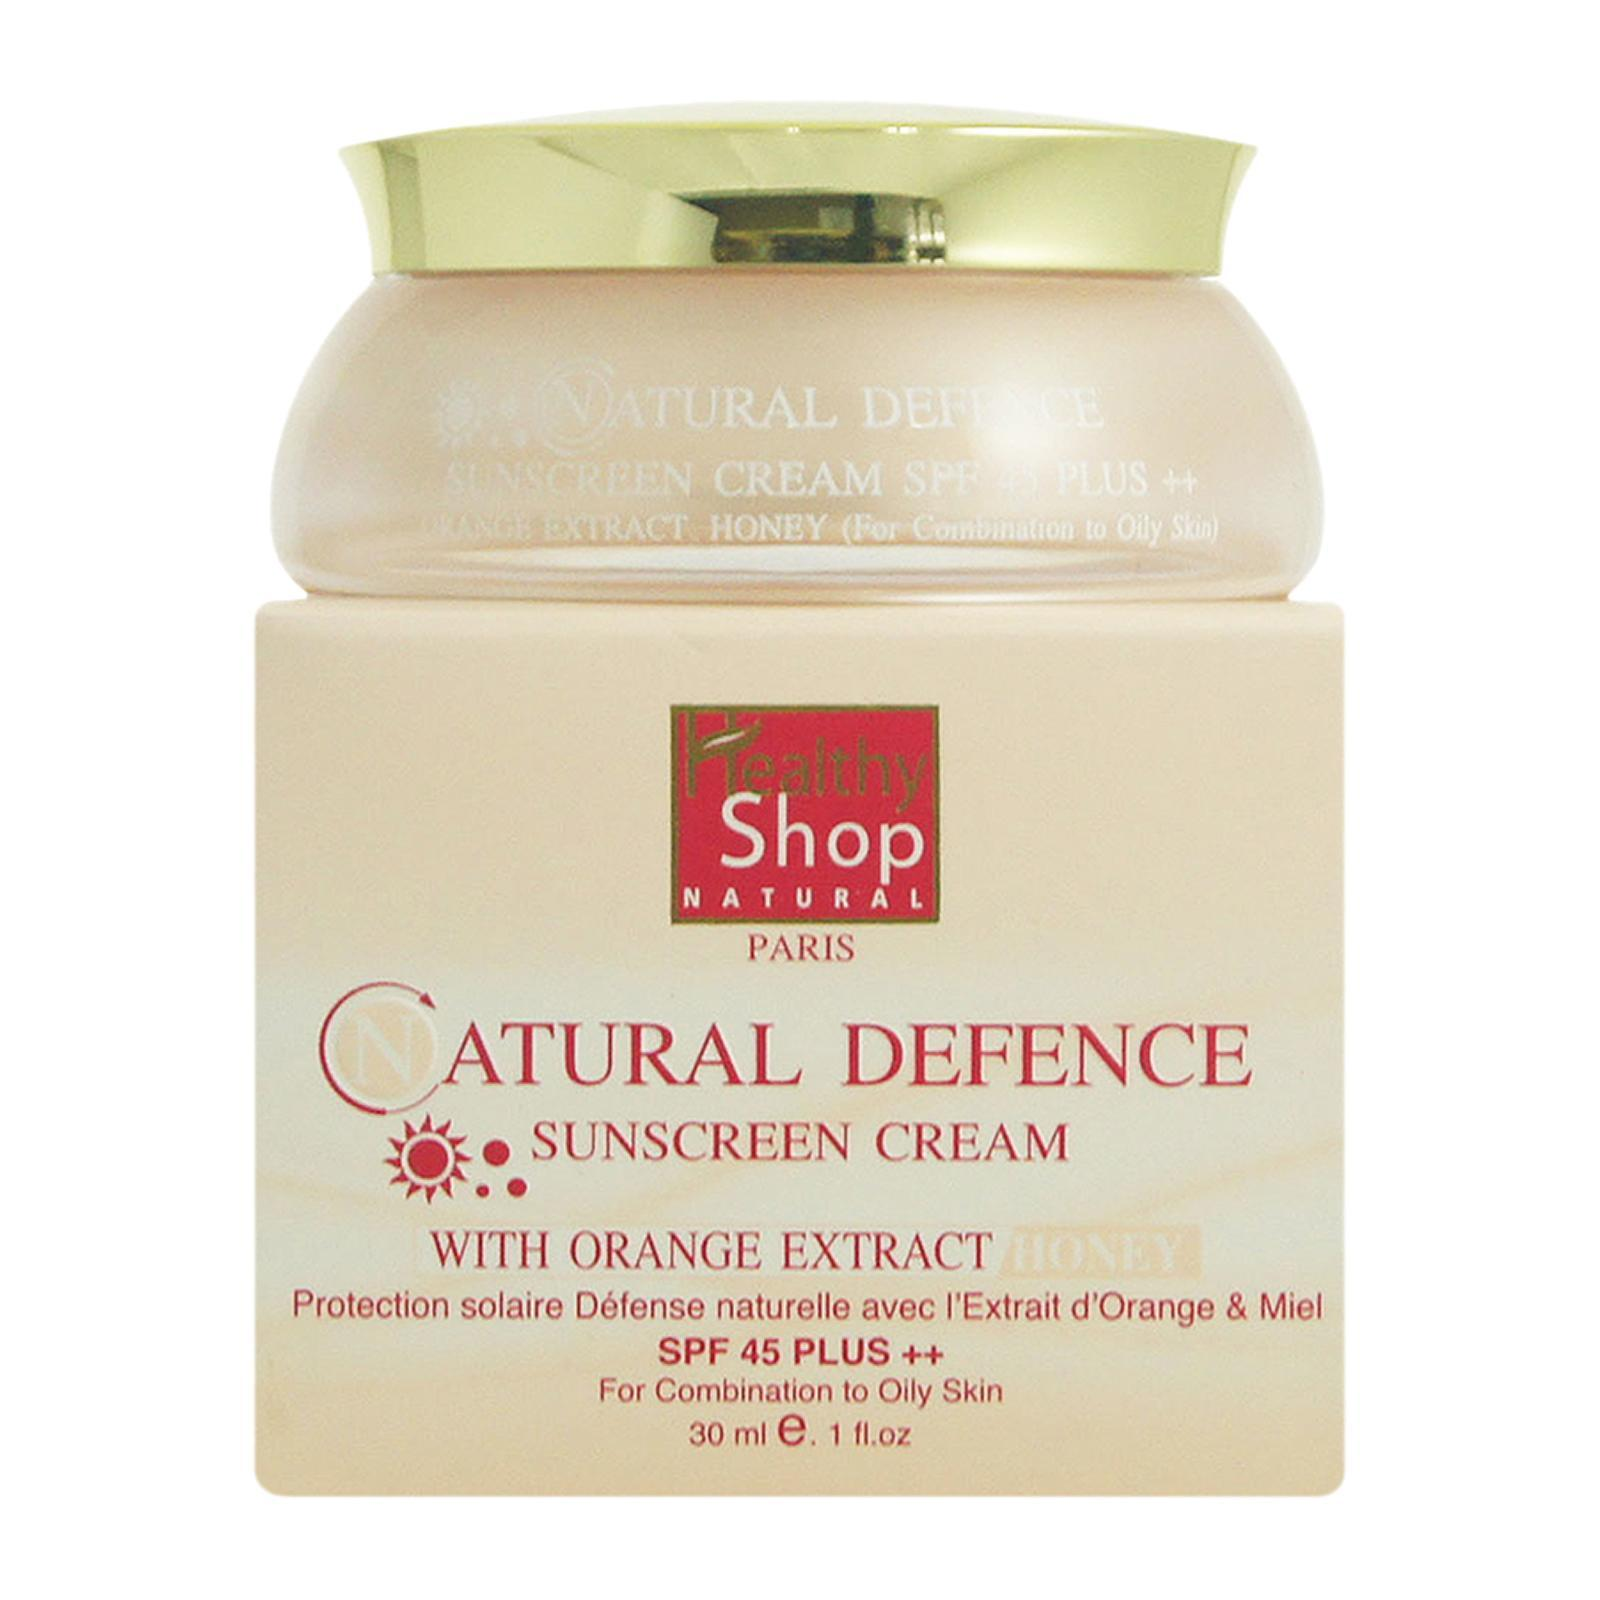 Healthy Shop 150 Defence Sunscreen Cream Orange Extract For Combination to Oily Skin